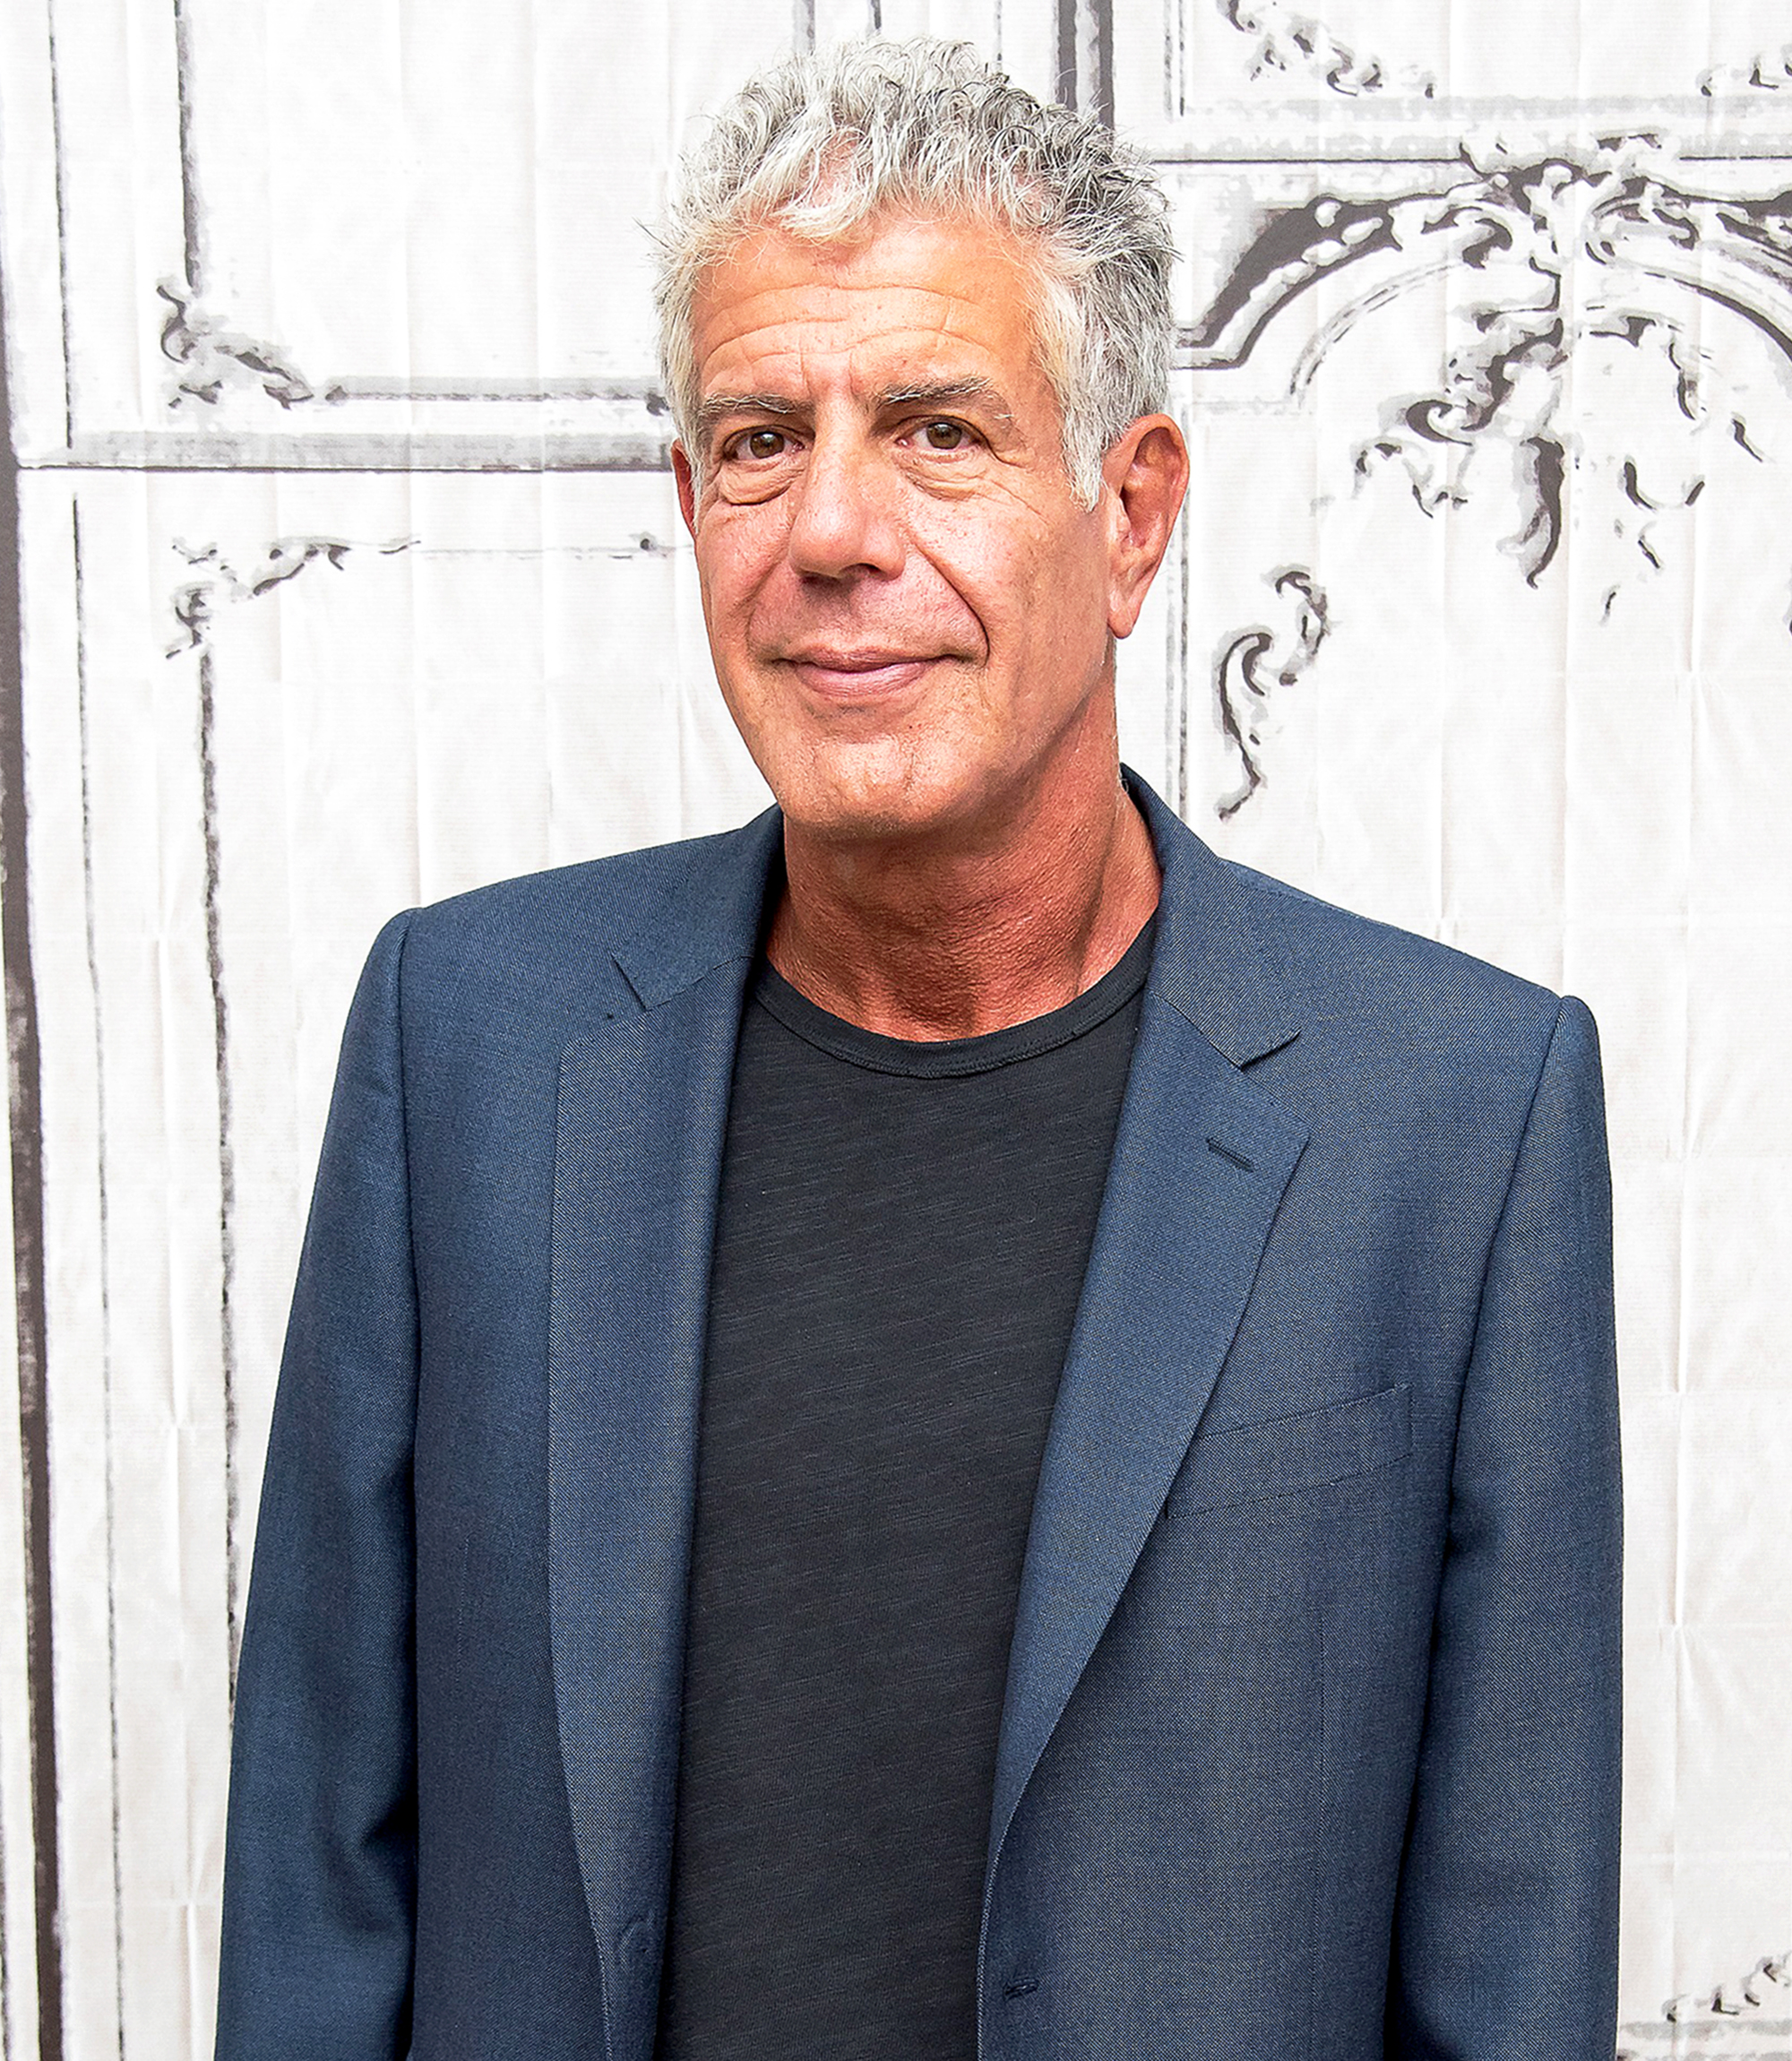 Anthony Bourdain did not have drugs or alcohol in his system